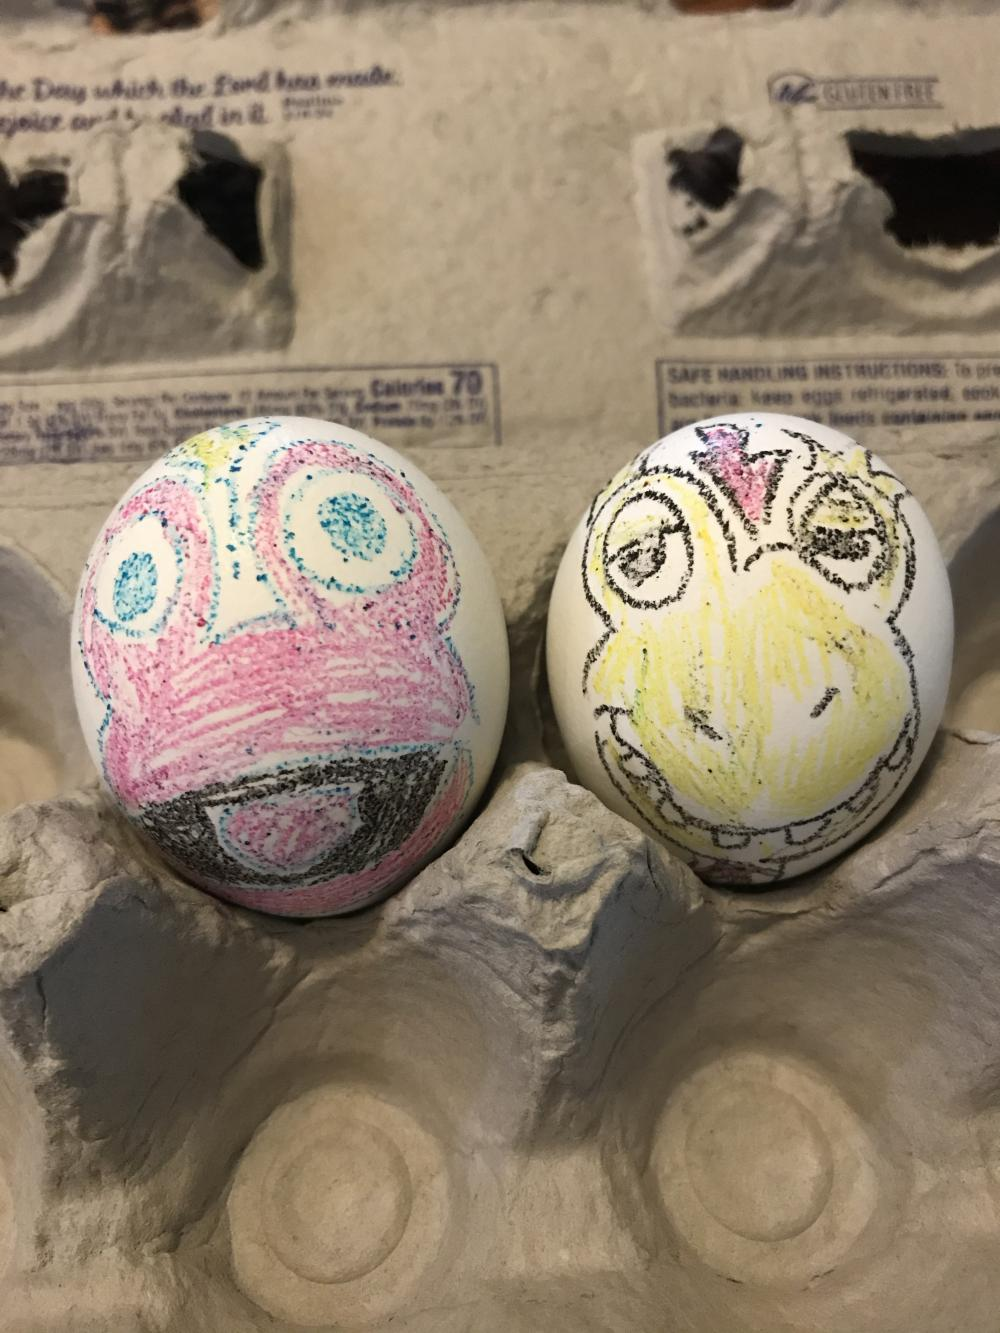 Toony and Kerwyn inspired Easter Eggs. We love seeing the great cartoons we grew up watching. Thank you for bringing these back to us!